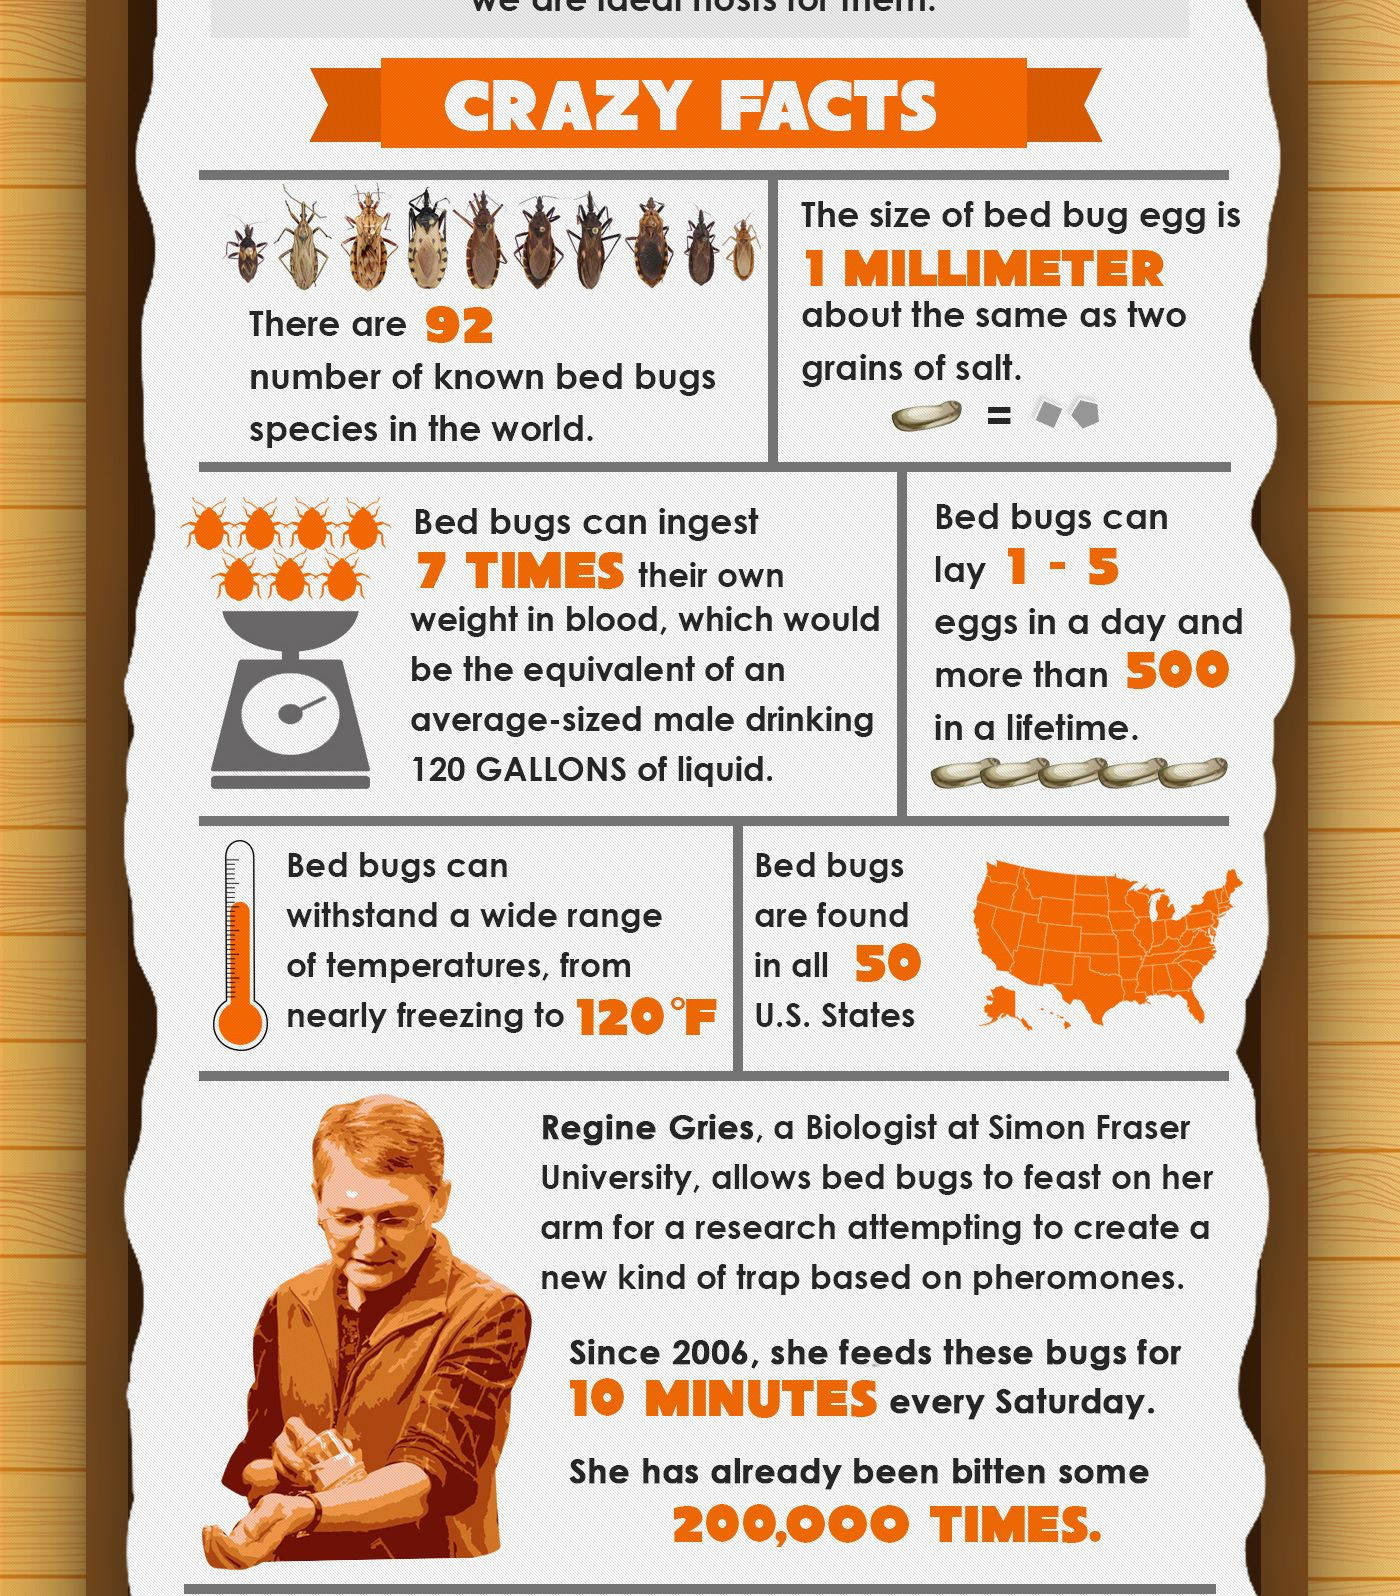 7 Crazy Facts About Bed Bugs Infographic Bed Bugs Bed Bug